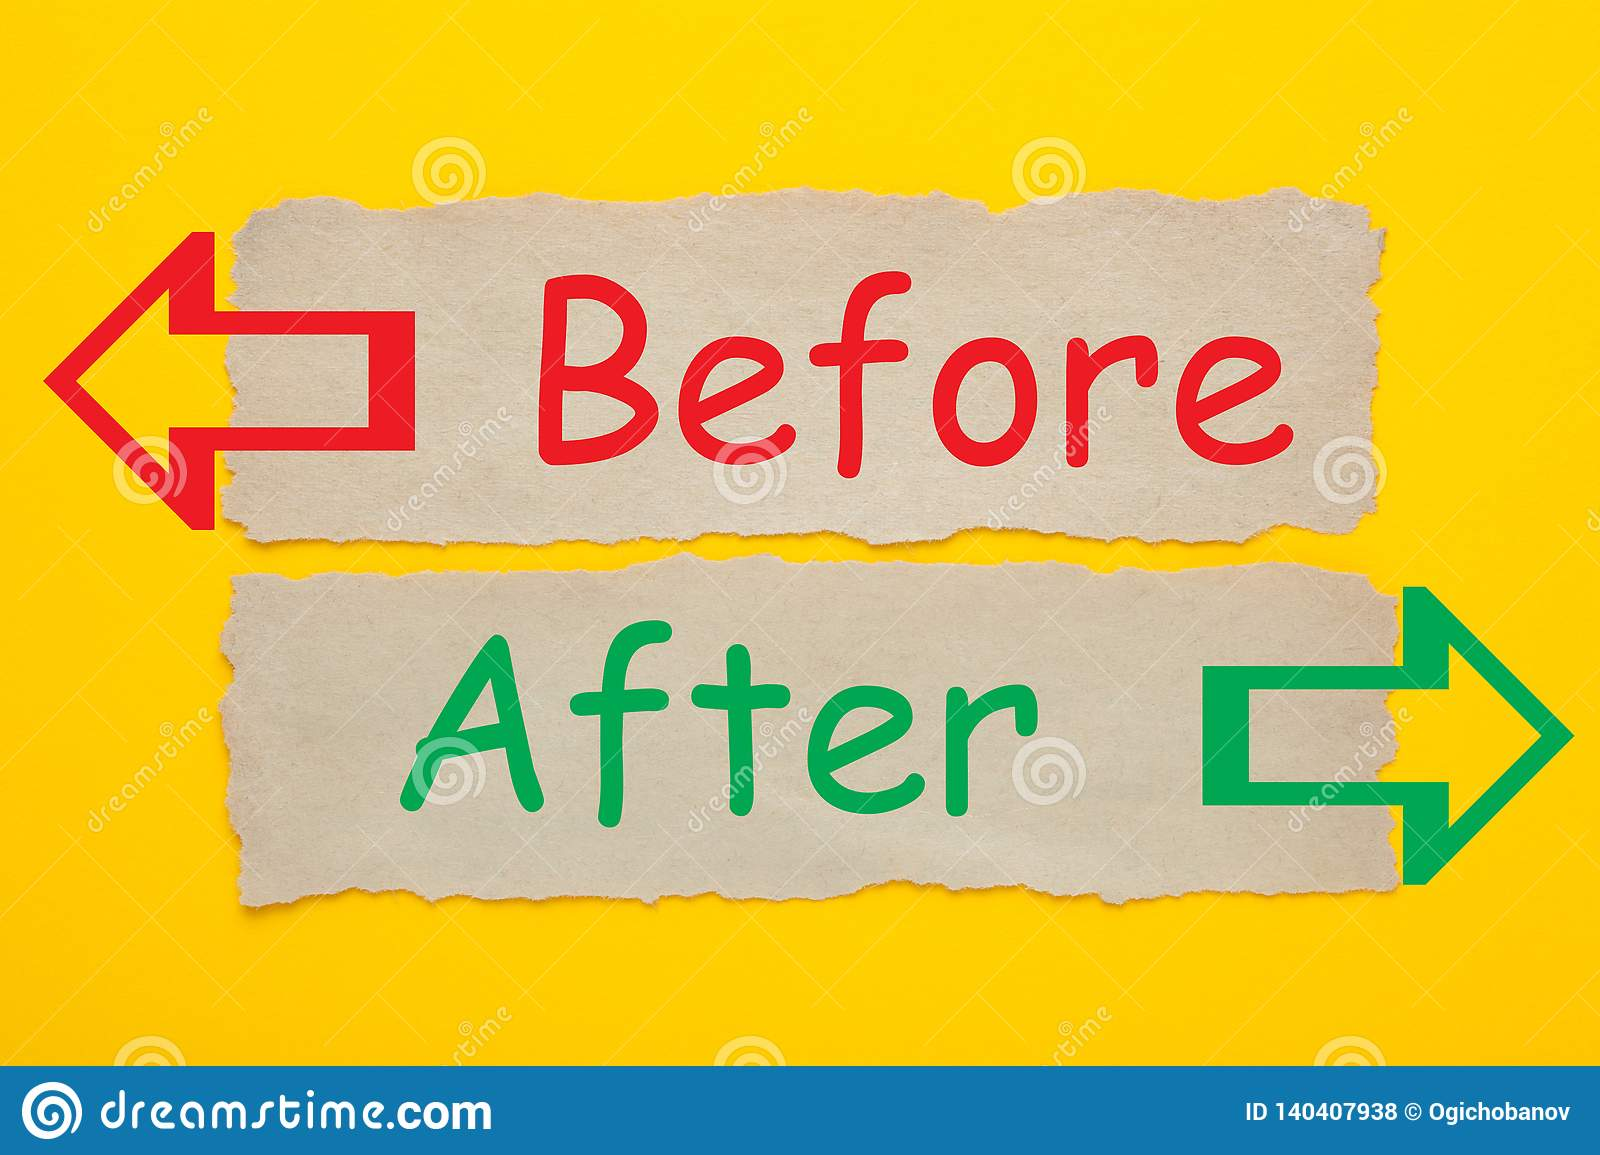 Before After Concept stock photo. Image of communication - 140407938